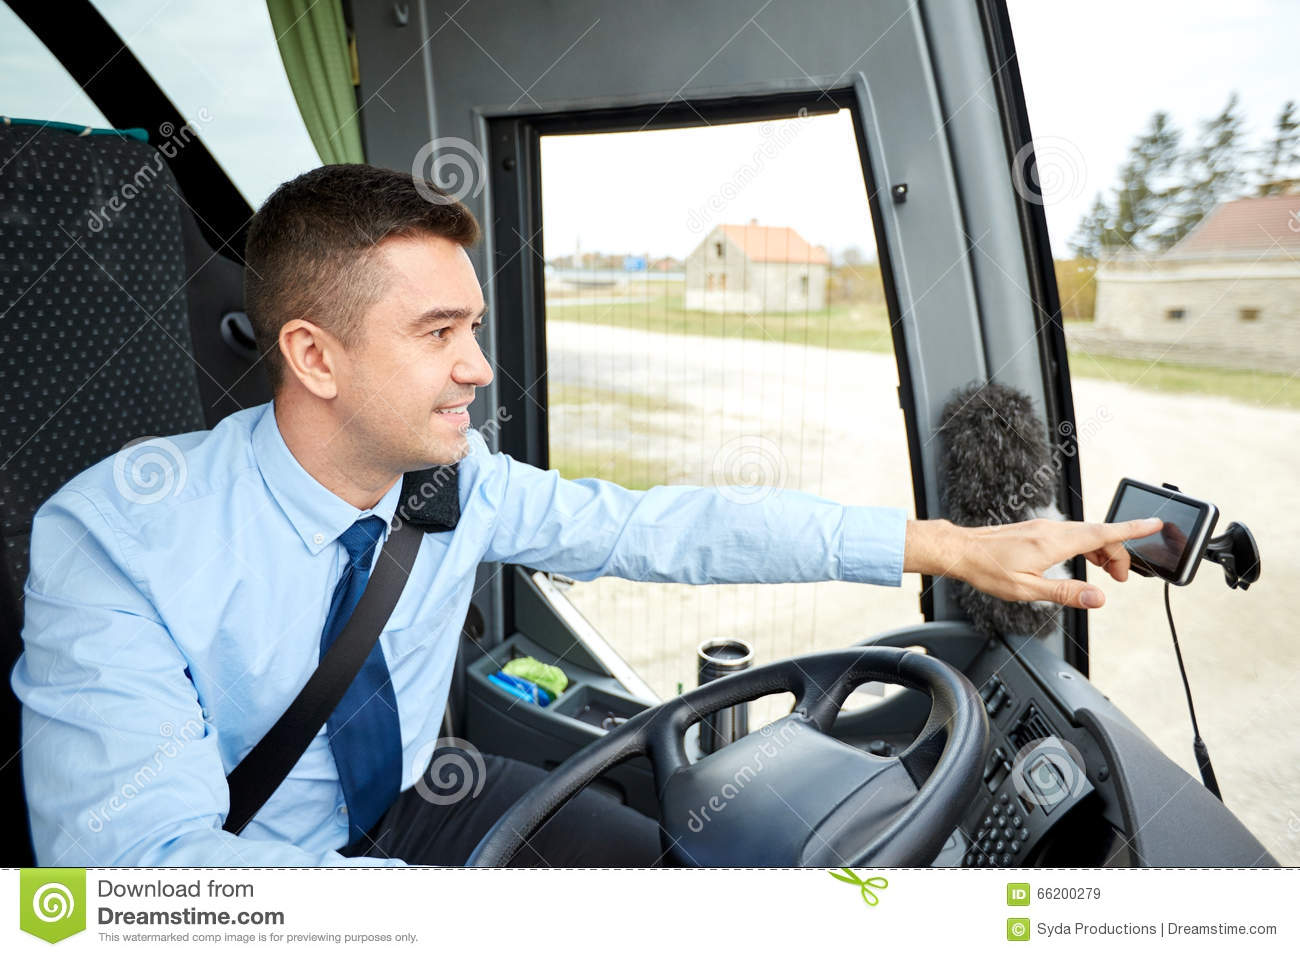 Bus driver entering address to gps navigator